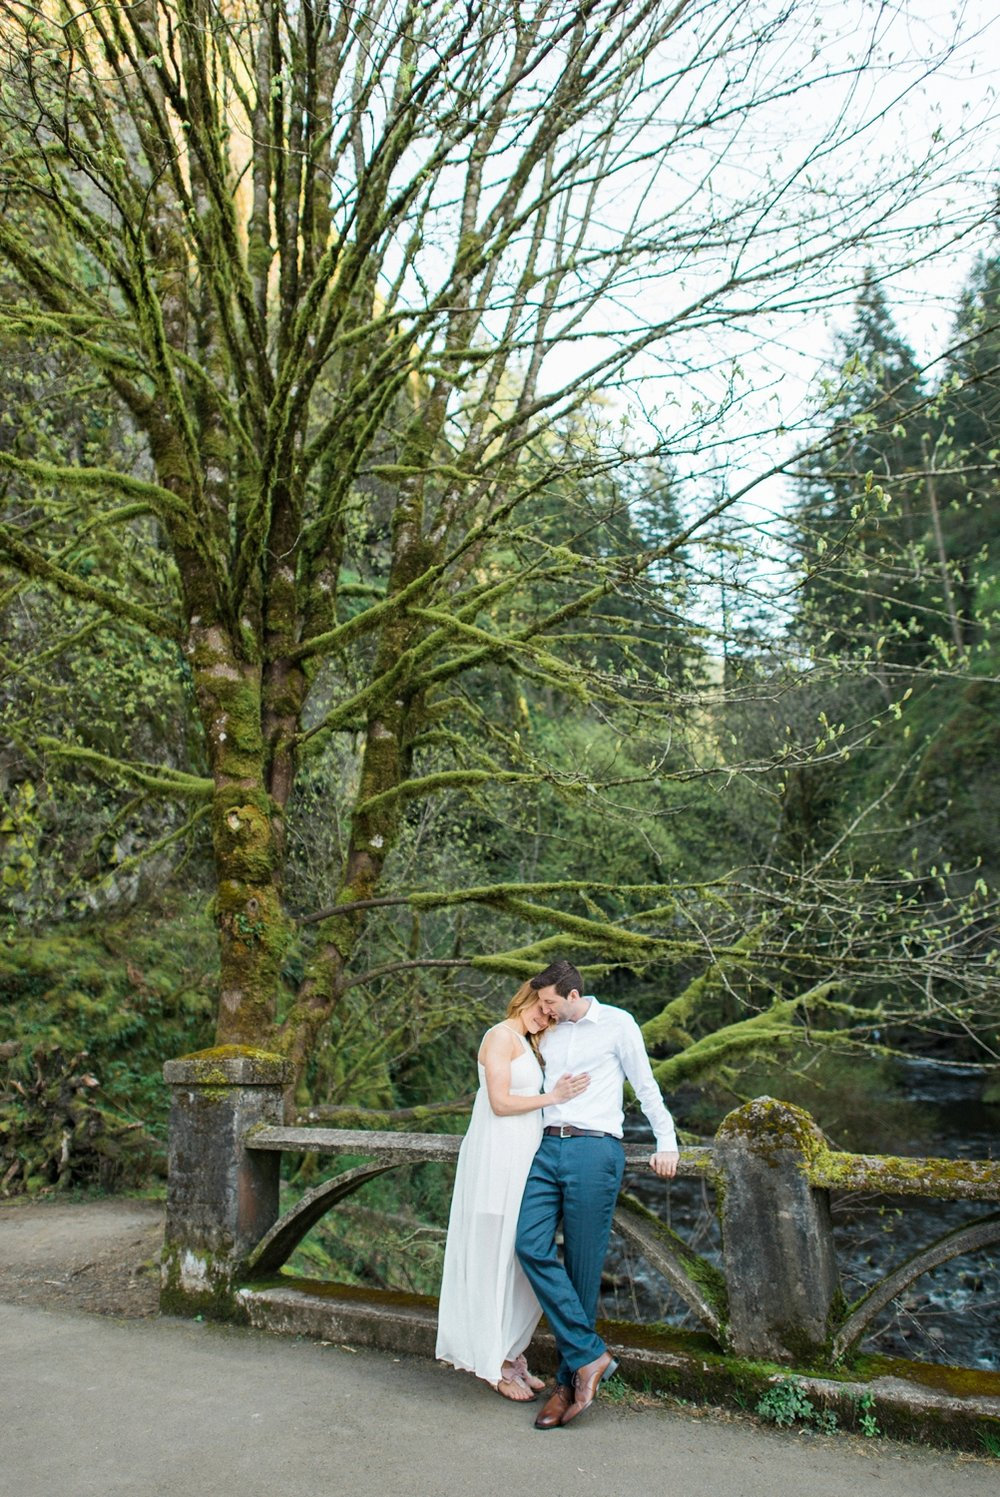 portland-engagement-columbia-river-gorge-oneonta-latourell-waterfall-shelley-marie-photo-054_cr.jpg